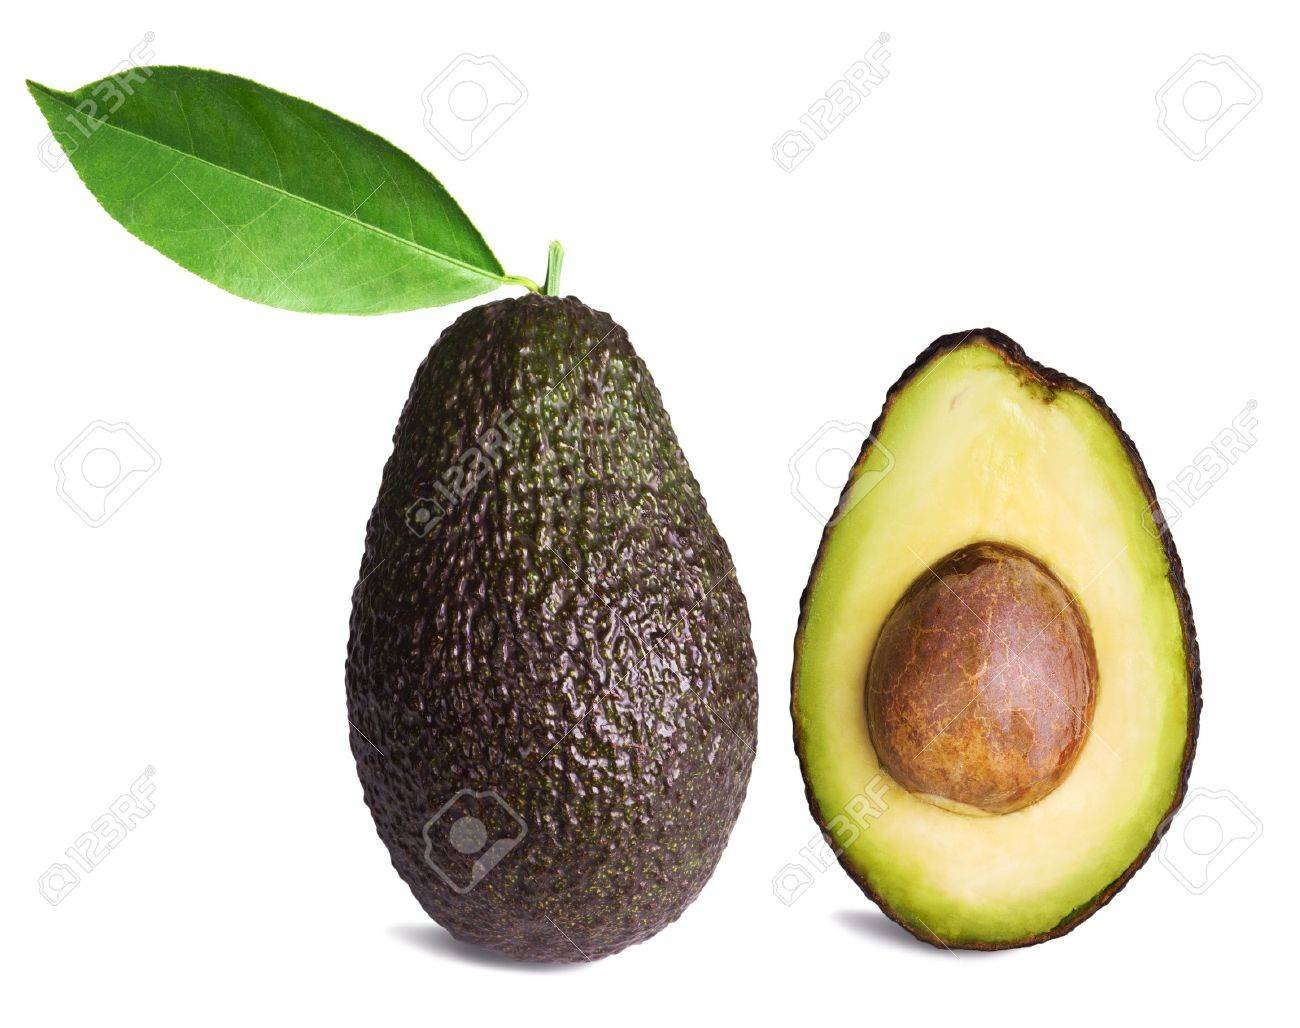 whole and half avocados with leaf isolated on white background Stock Photo - 9392076